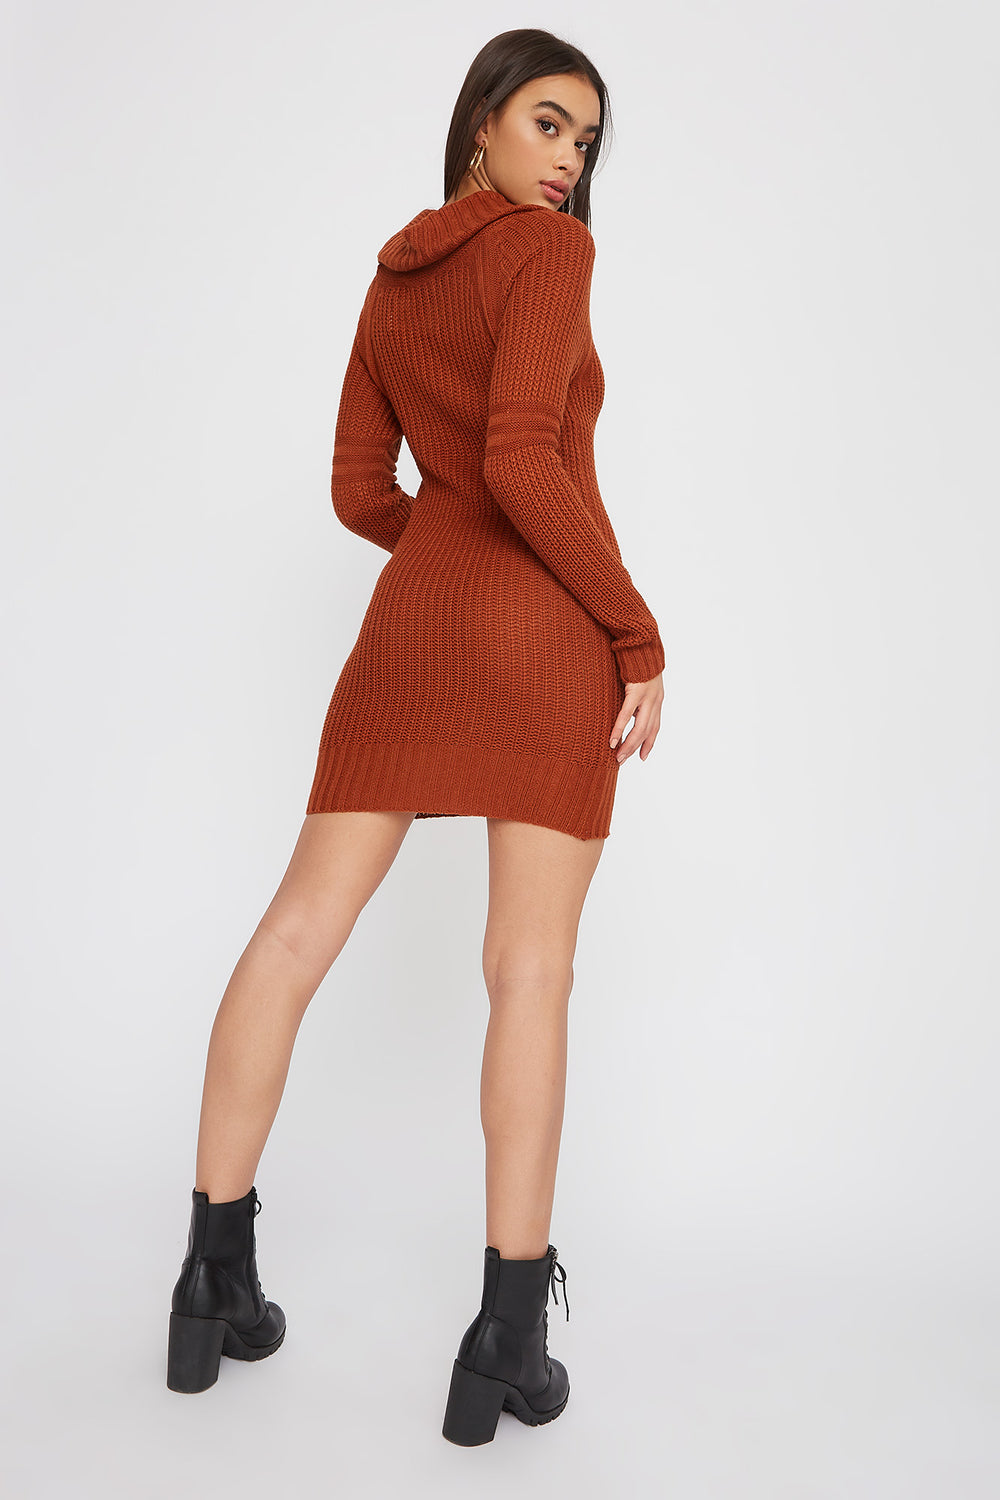 Cowl Neck Knit Sweater Dress Gold